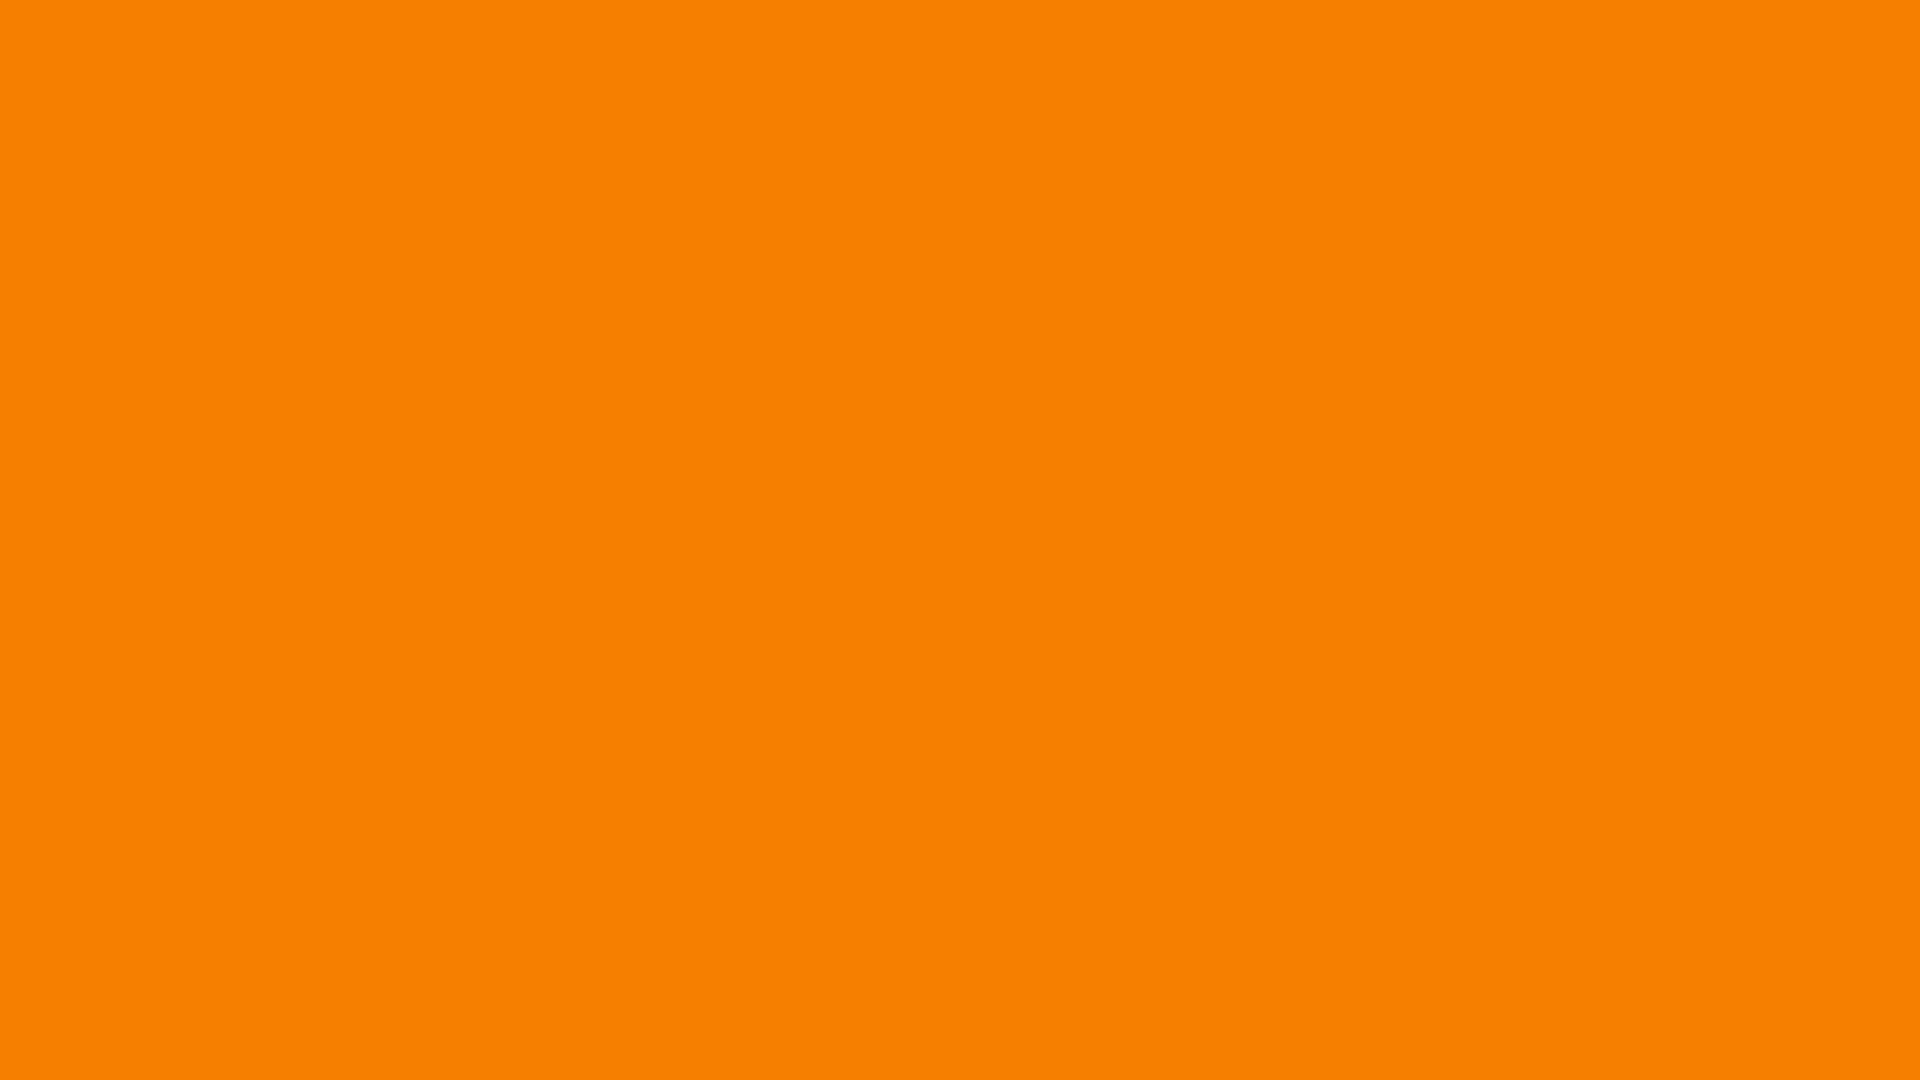 1920x1080 University Of Tennessee Orange Solid Color Background